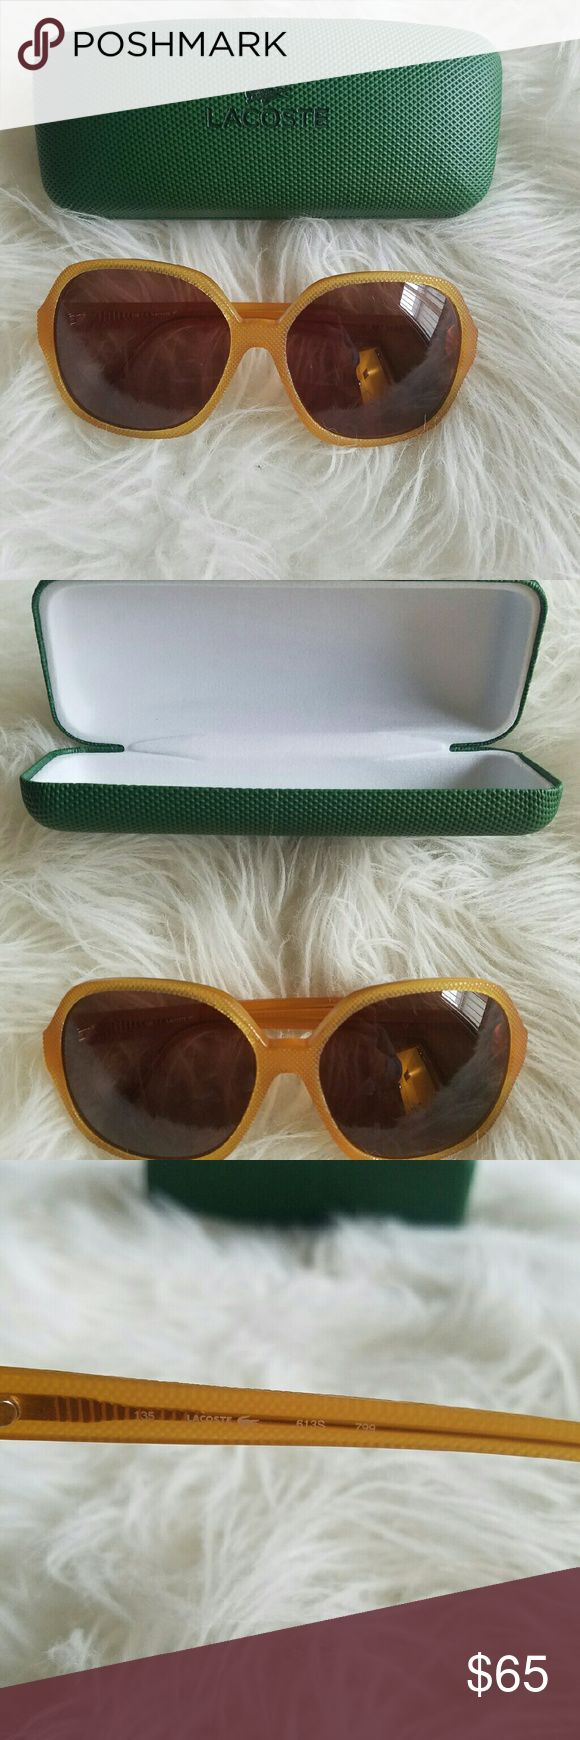 HPLacoste woman's sunglasses Brand new. Gift but are too big on me. Great looking pair of shades. 100% UVA protection.  Purchased through elite Eyewear. Accessories Glasses